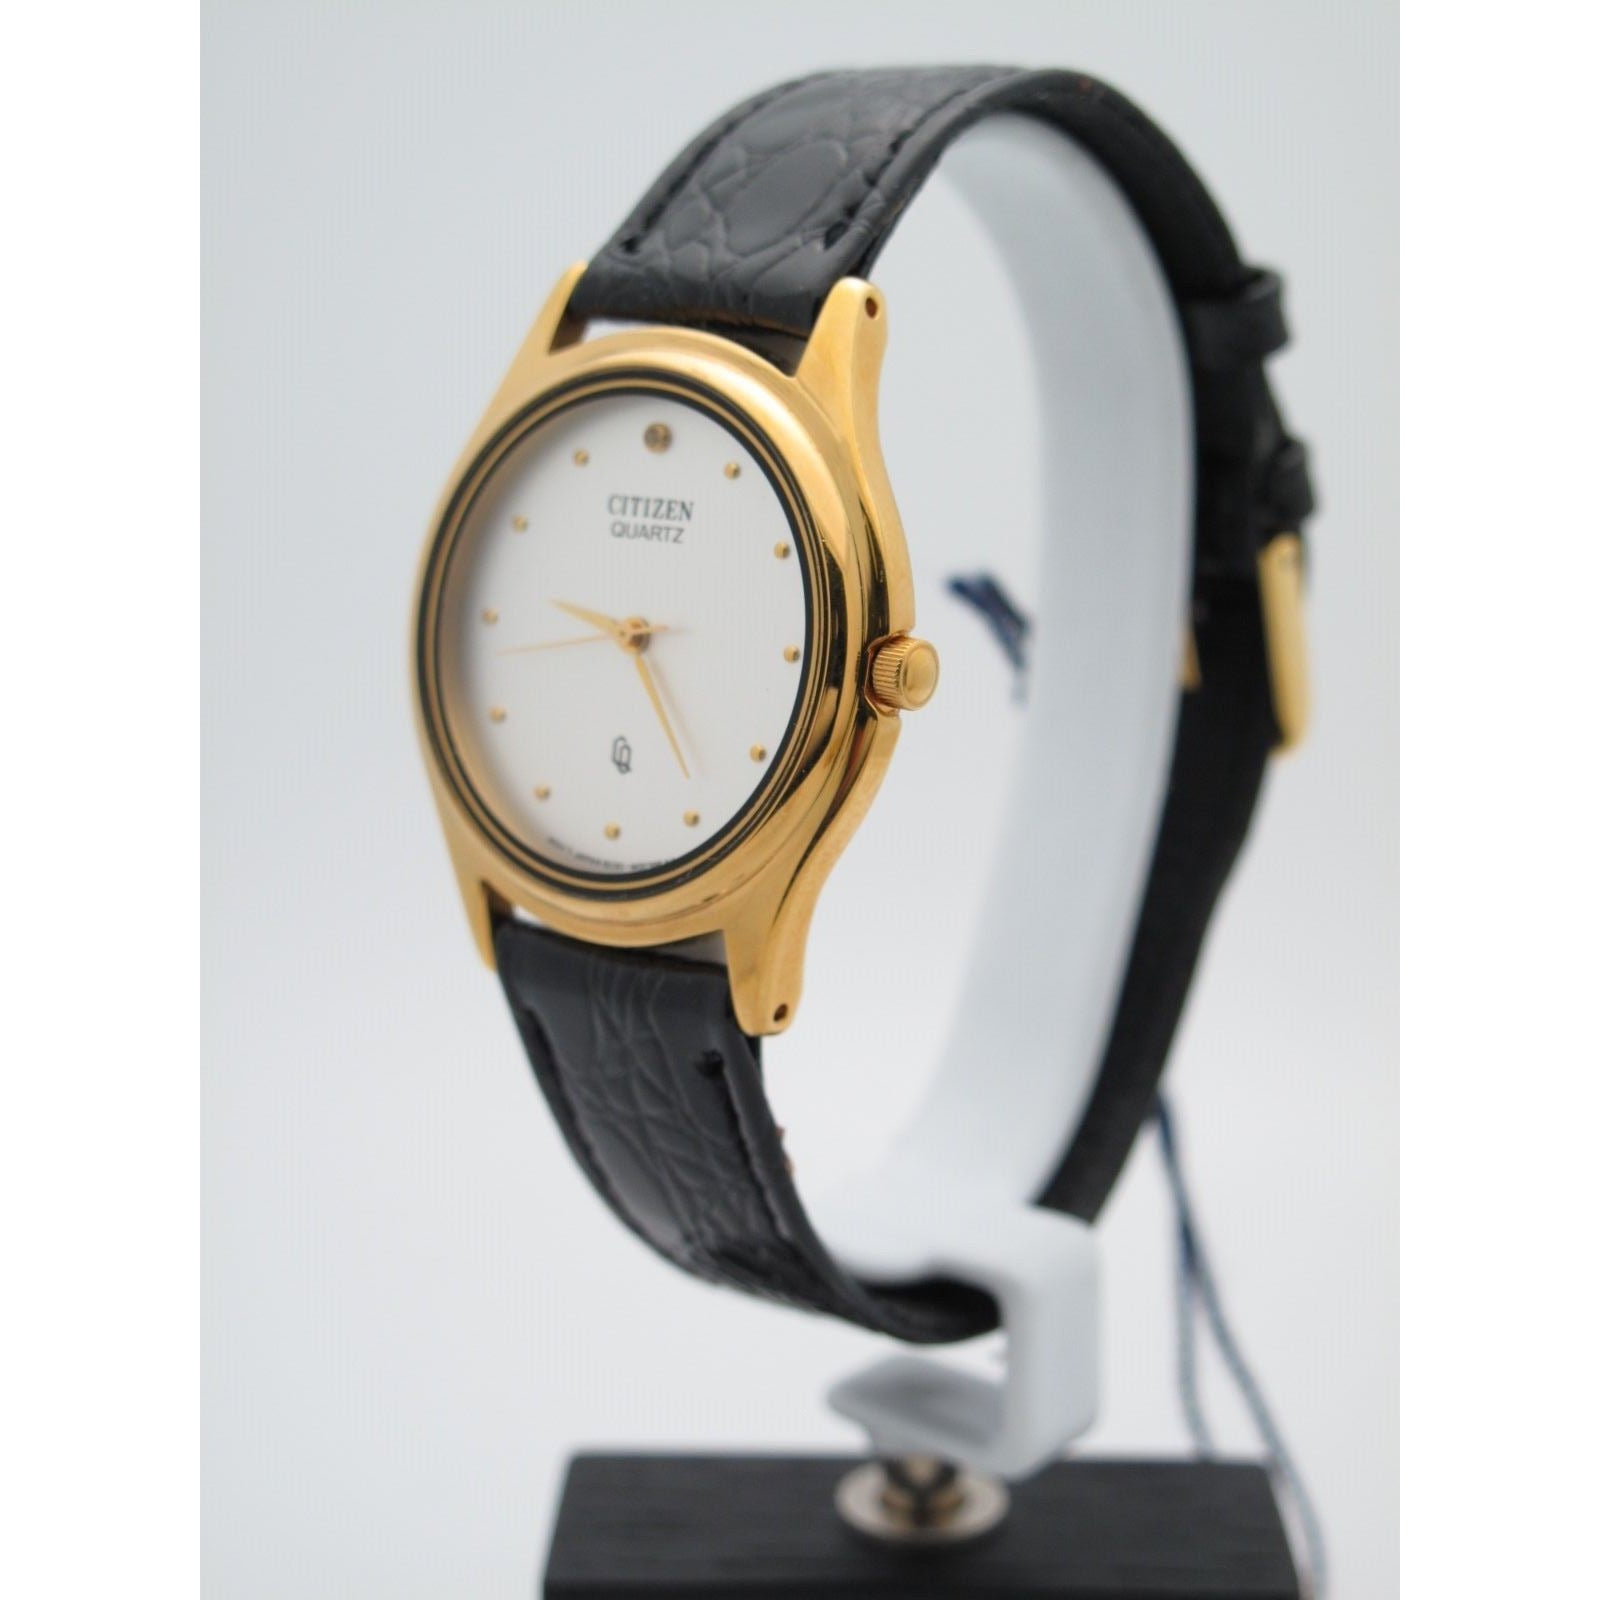 51ca0b93790 Citizen Men s Gold Stainless Steel Silver Dial Black Leather Band Watch  11100015